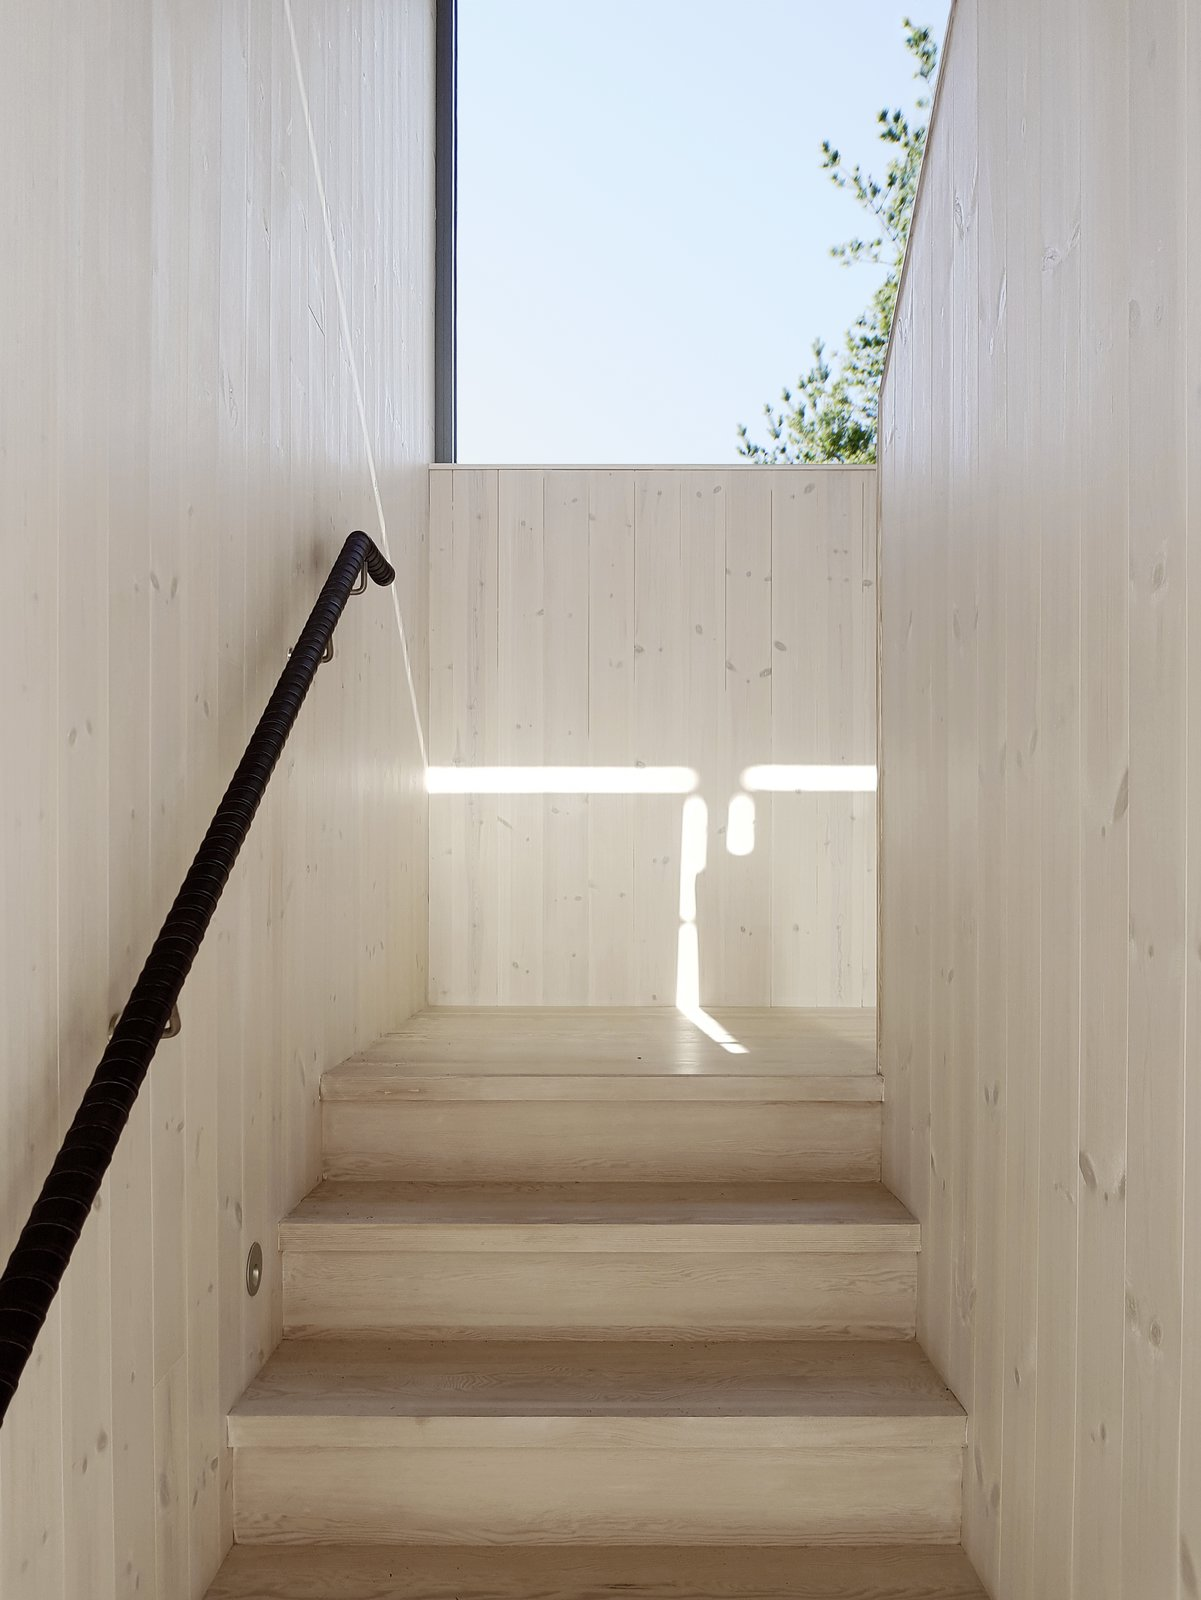 The skylights and light palette give the home a bright an airy feel.